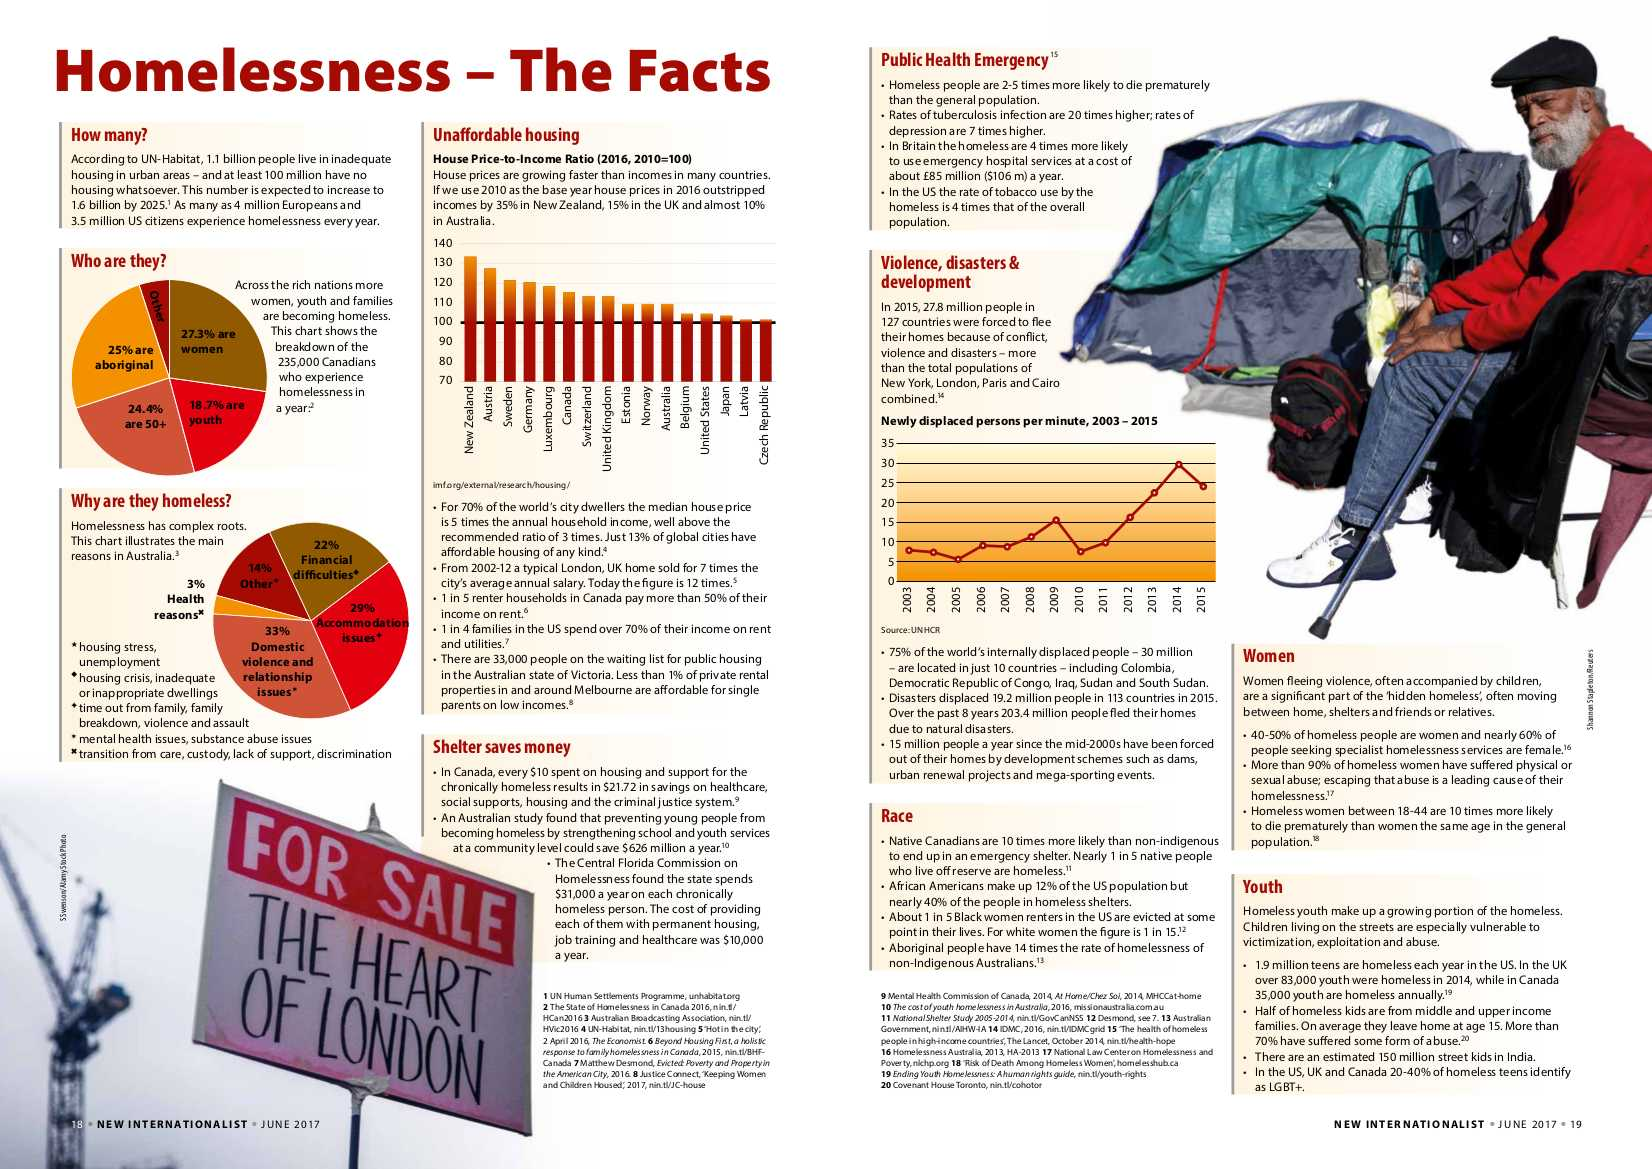 homelessness-the-facts.jpg